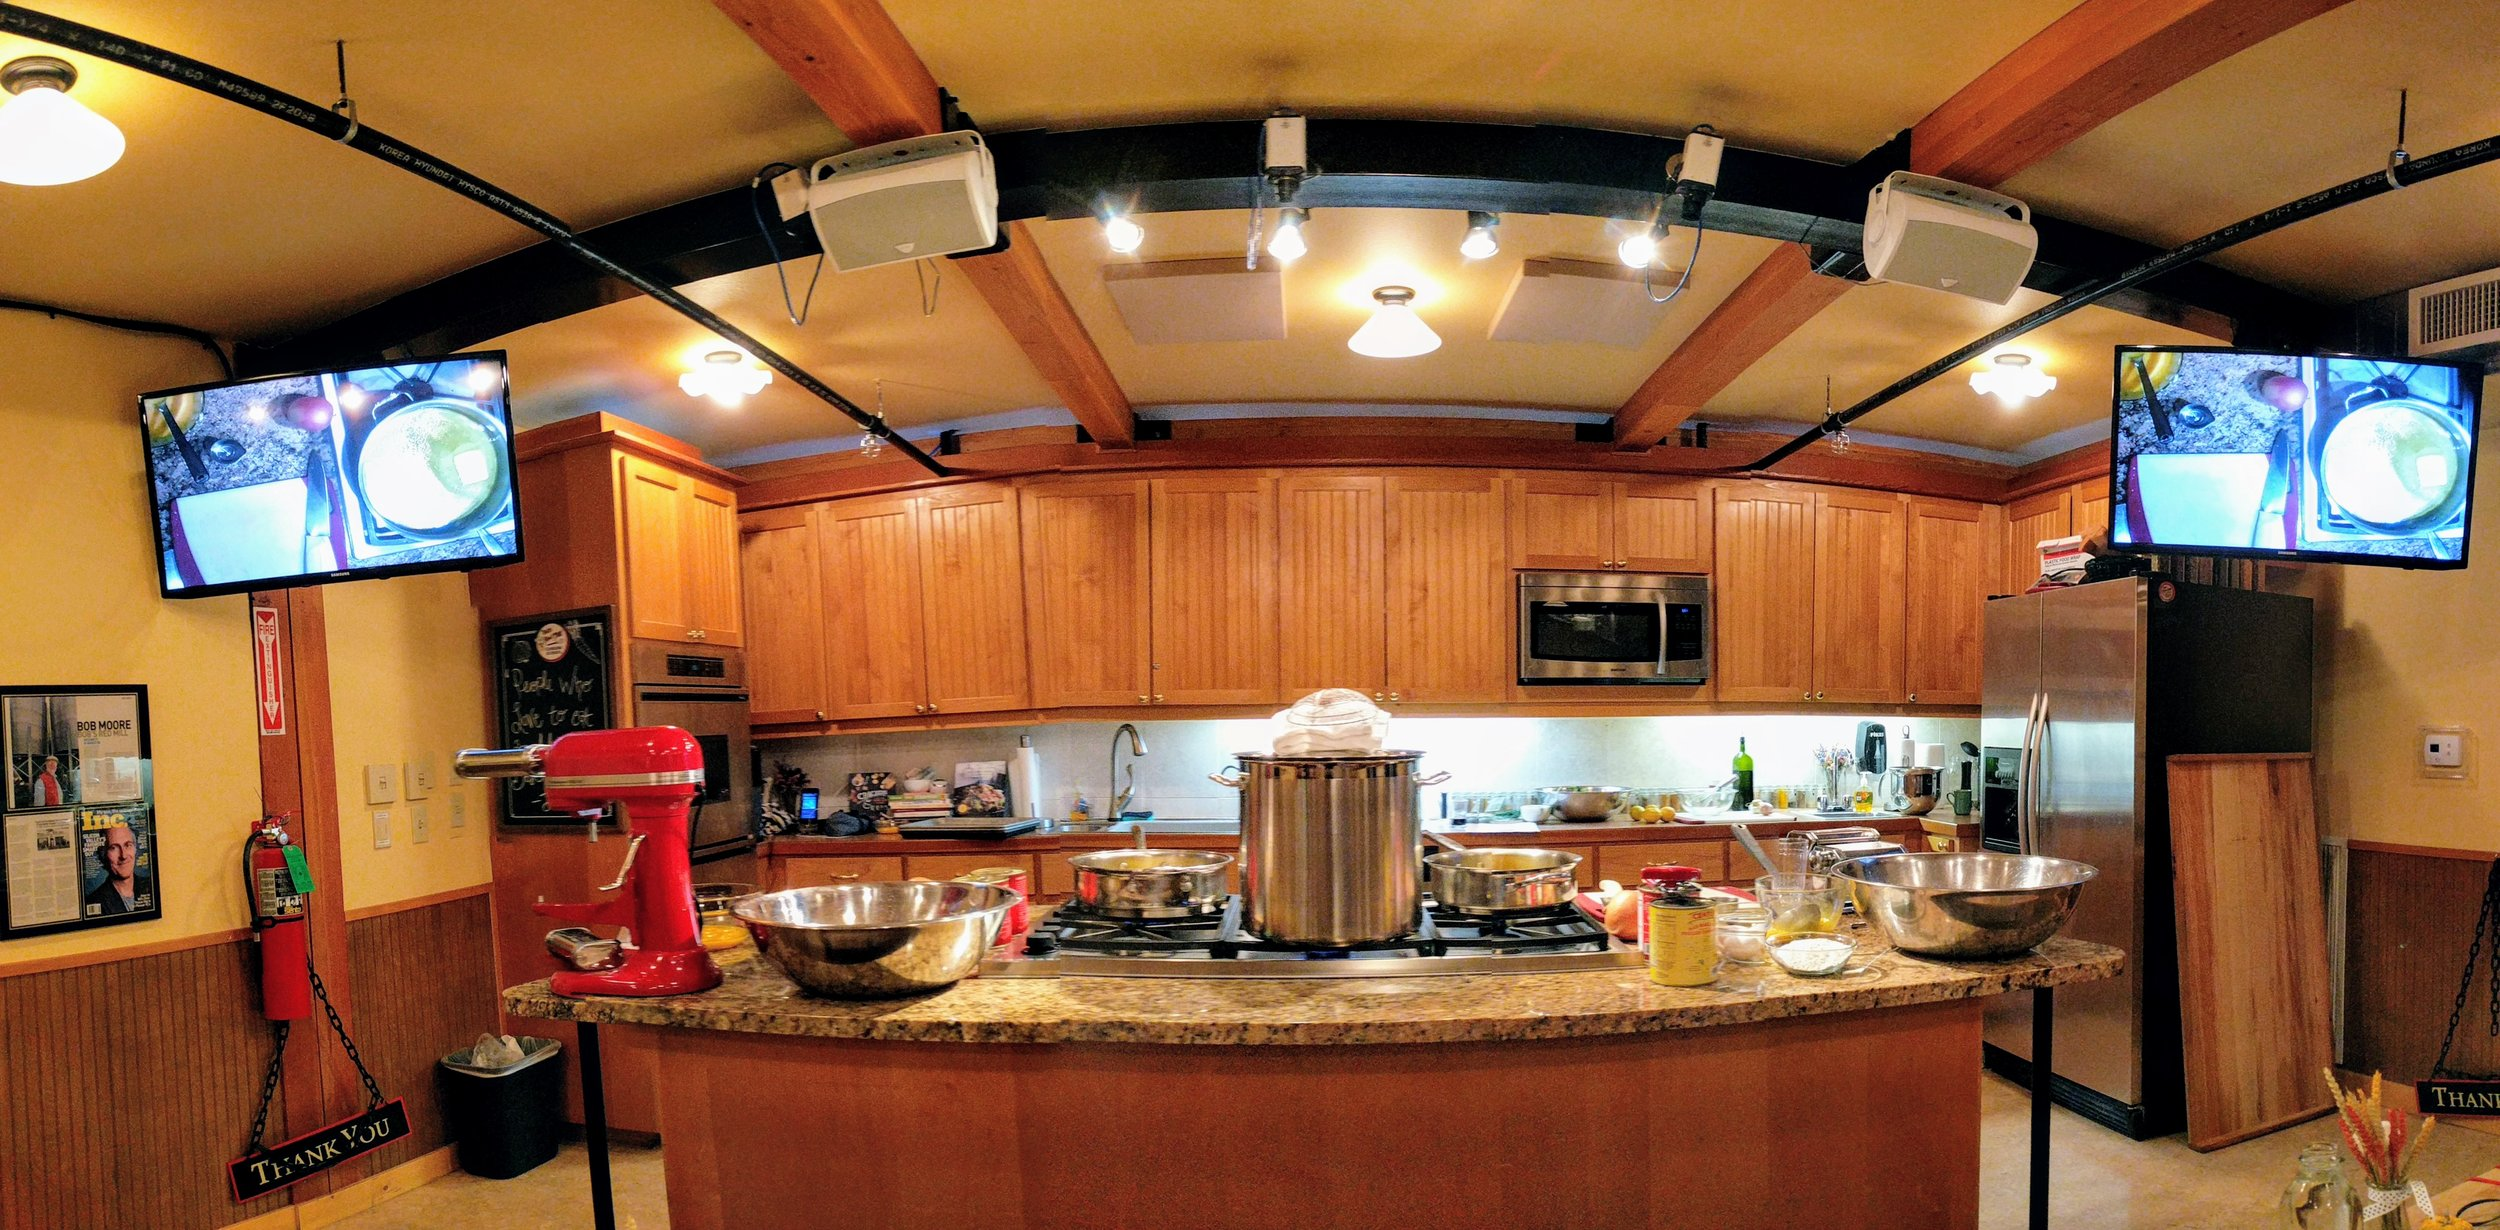 bobs-red-mill-kitchen.jpg